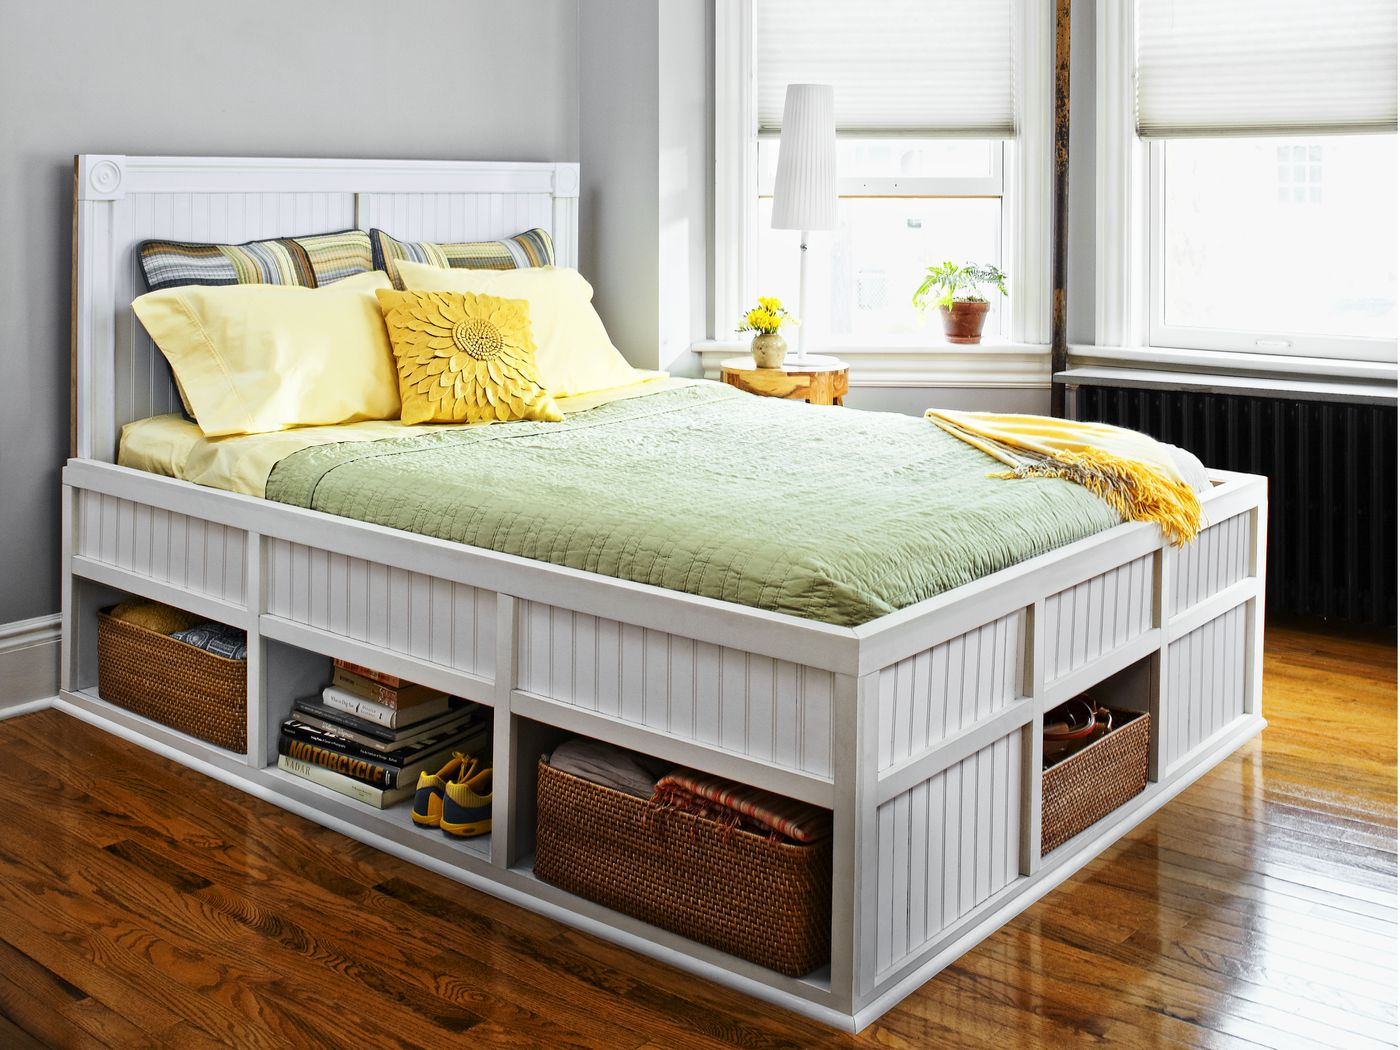 How To Build A Storage Bed This Old House